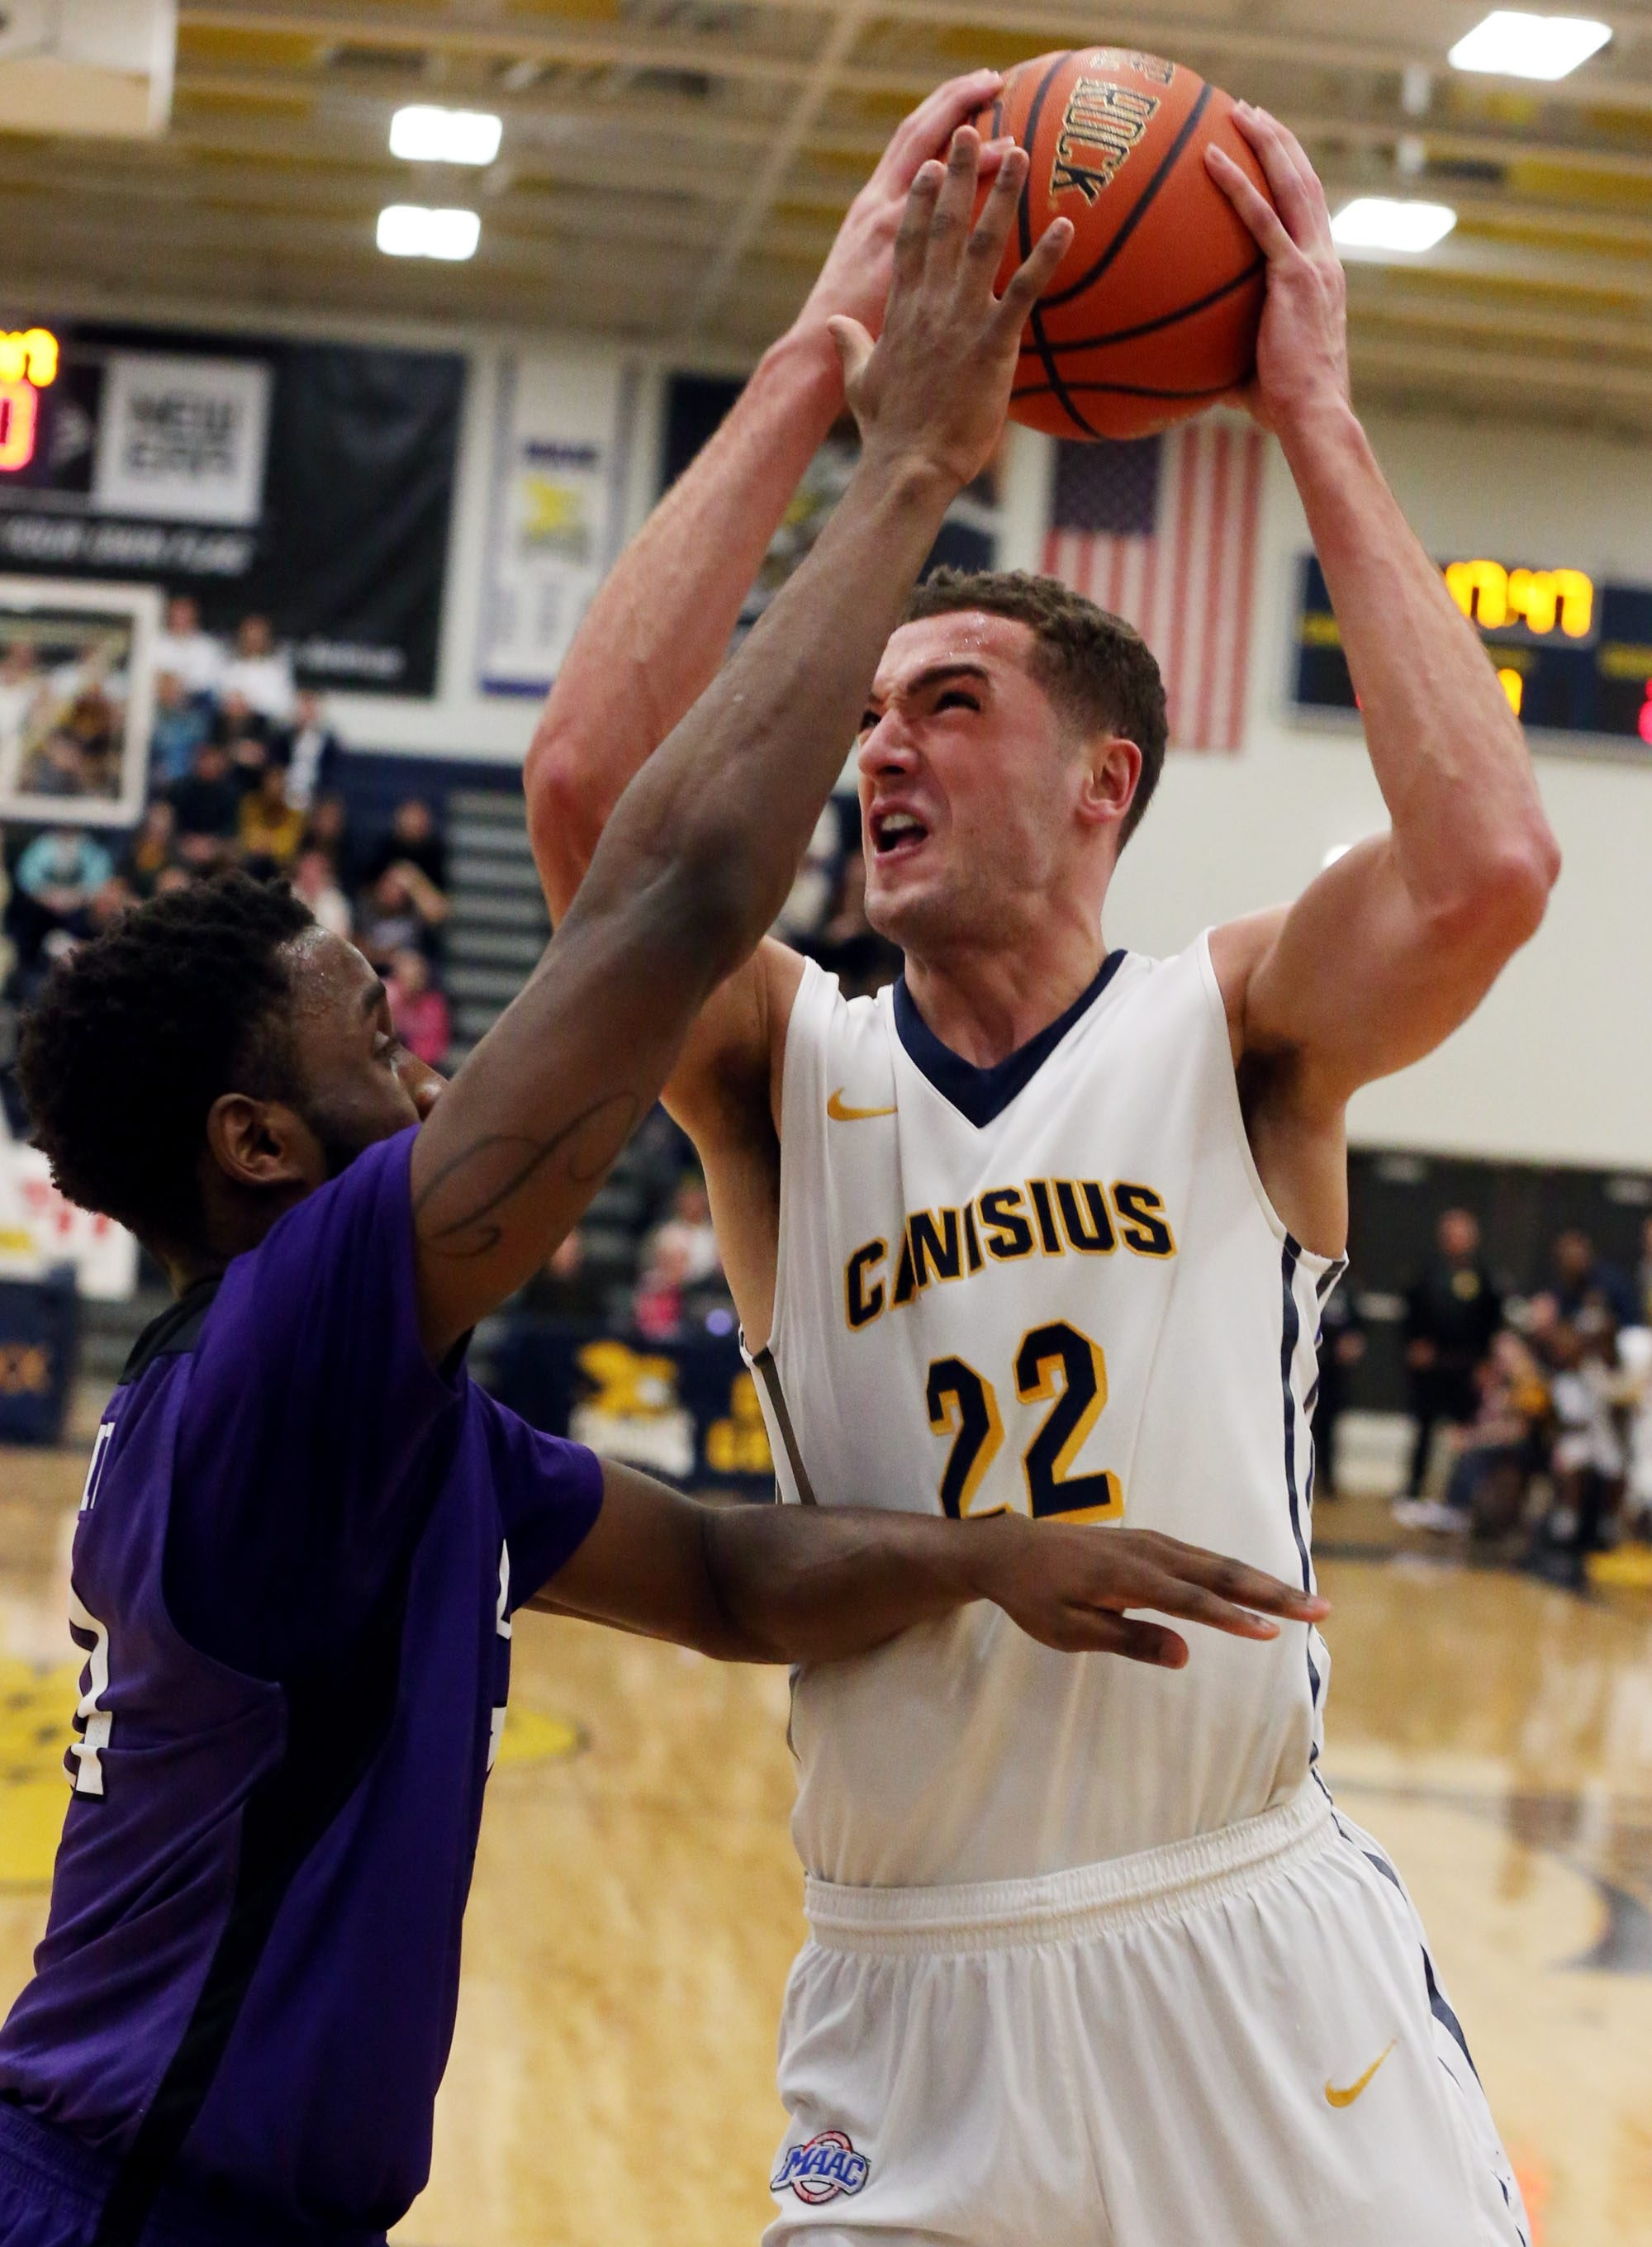 Canisius junior forward Phil Valenti shared scoring honors with Malcom McMillan at 14 points each.